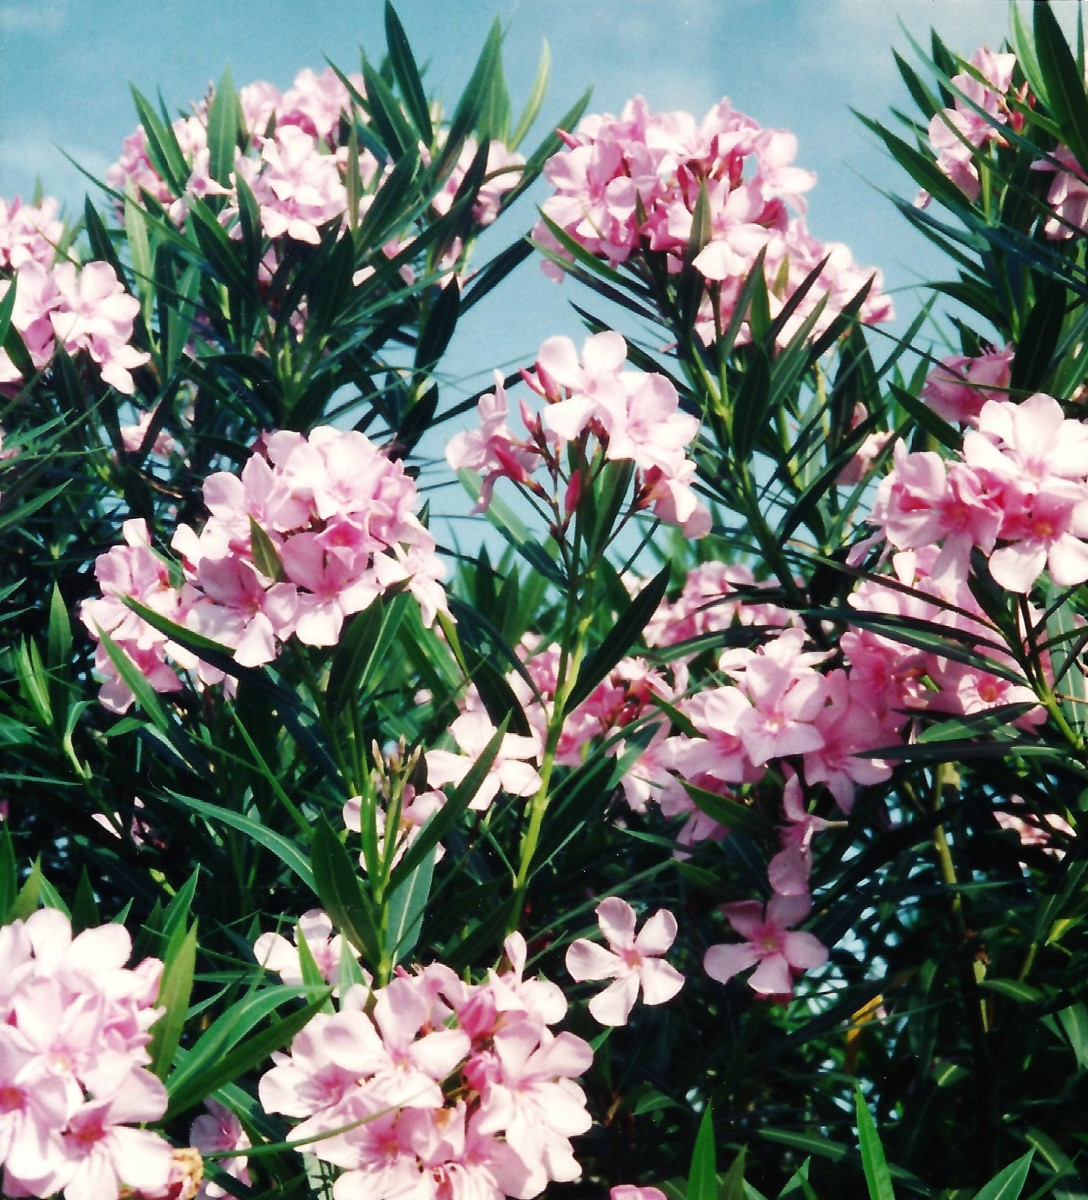 Our pink oleanders located at our previous home in Houston.